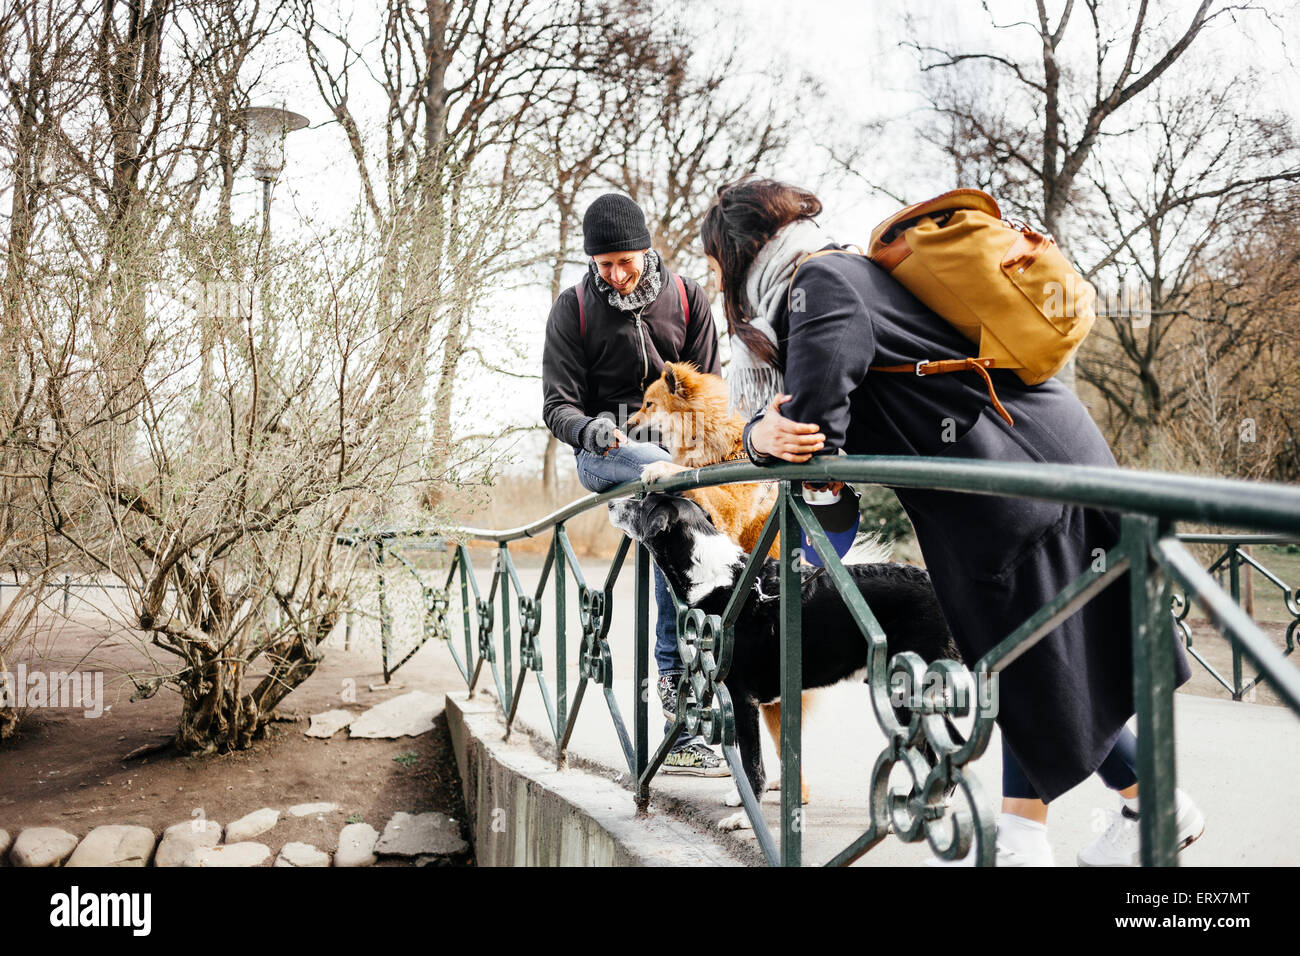 Couple with dogs standing on bridge at park - Stock Image